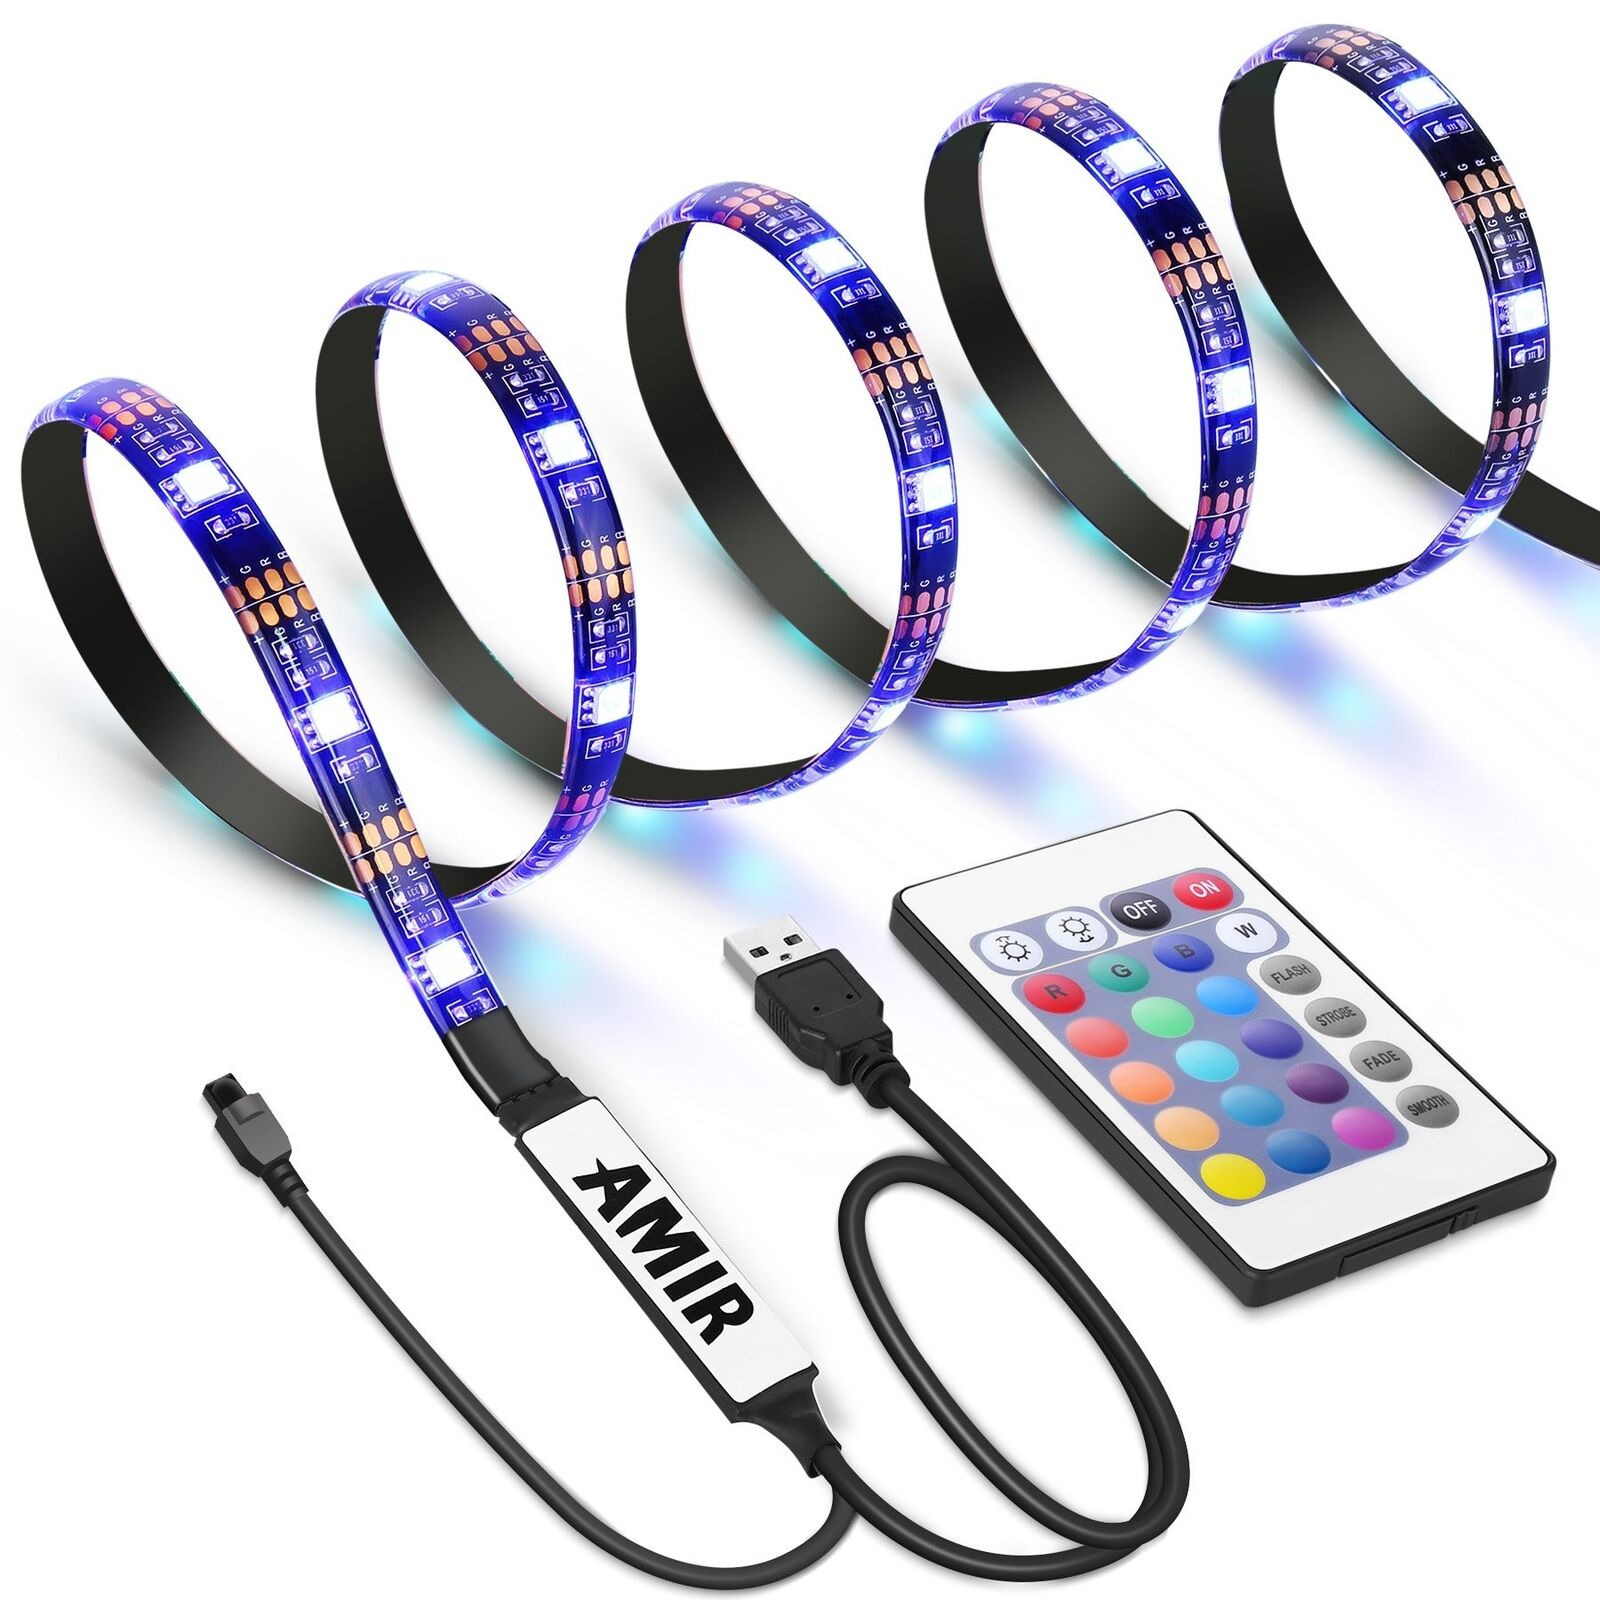 AMIR TV LED LIGHT STRIP, 30 LED TV BACKLIGHT STRIP, USB BIAS MONITOR LIGHTING